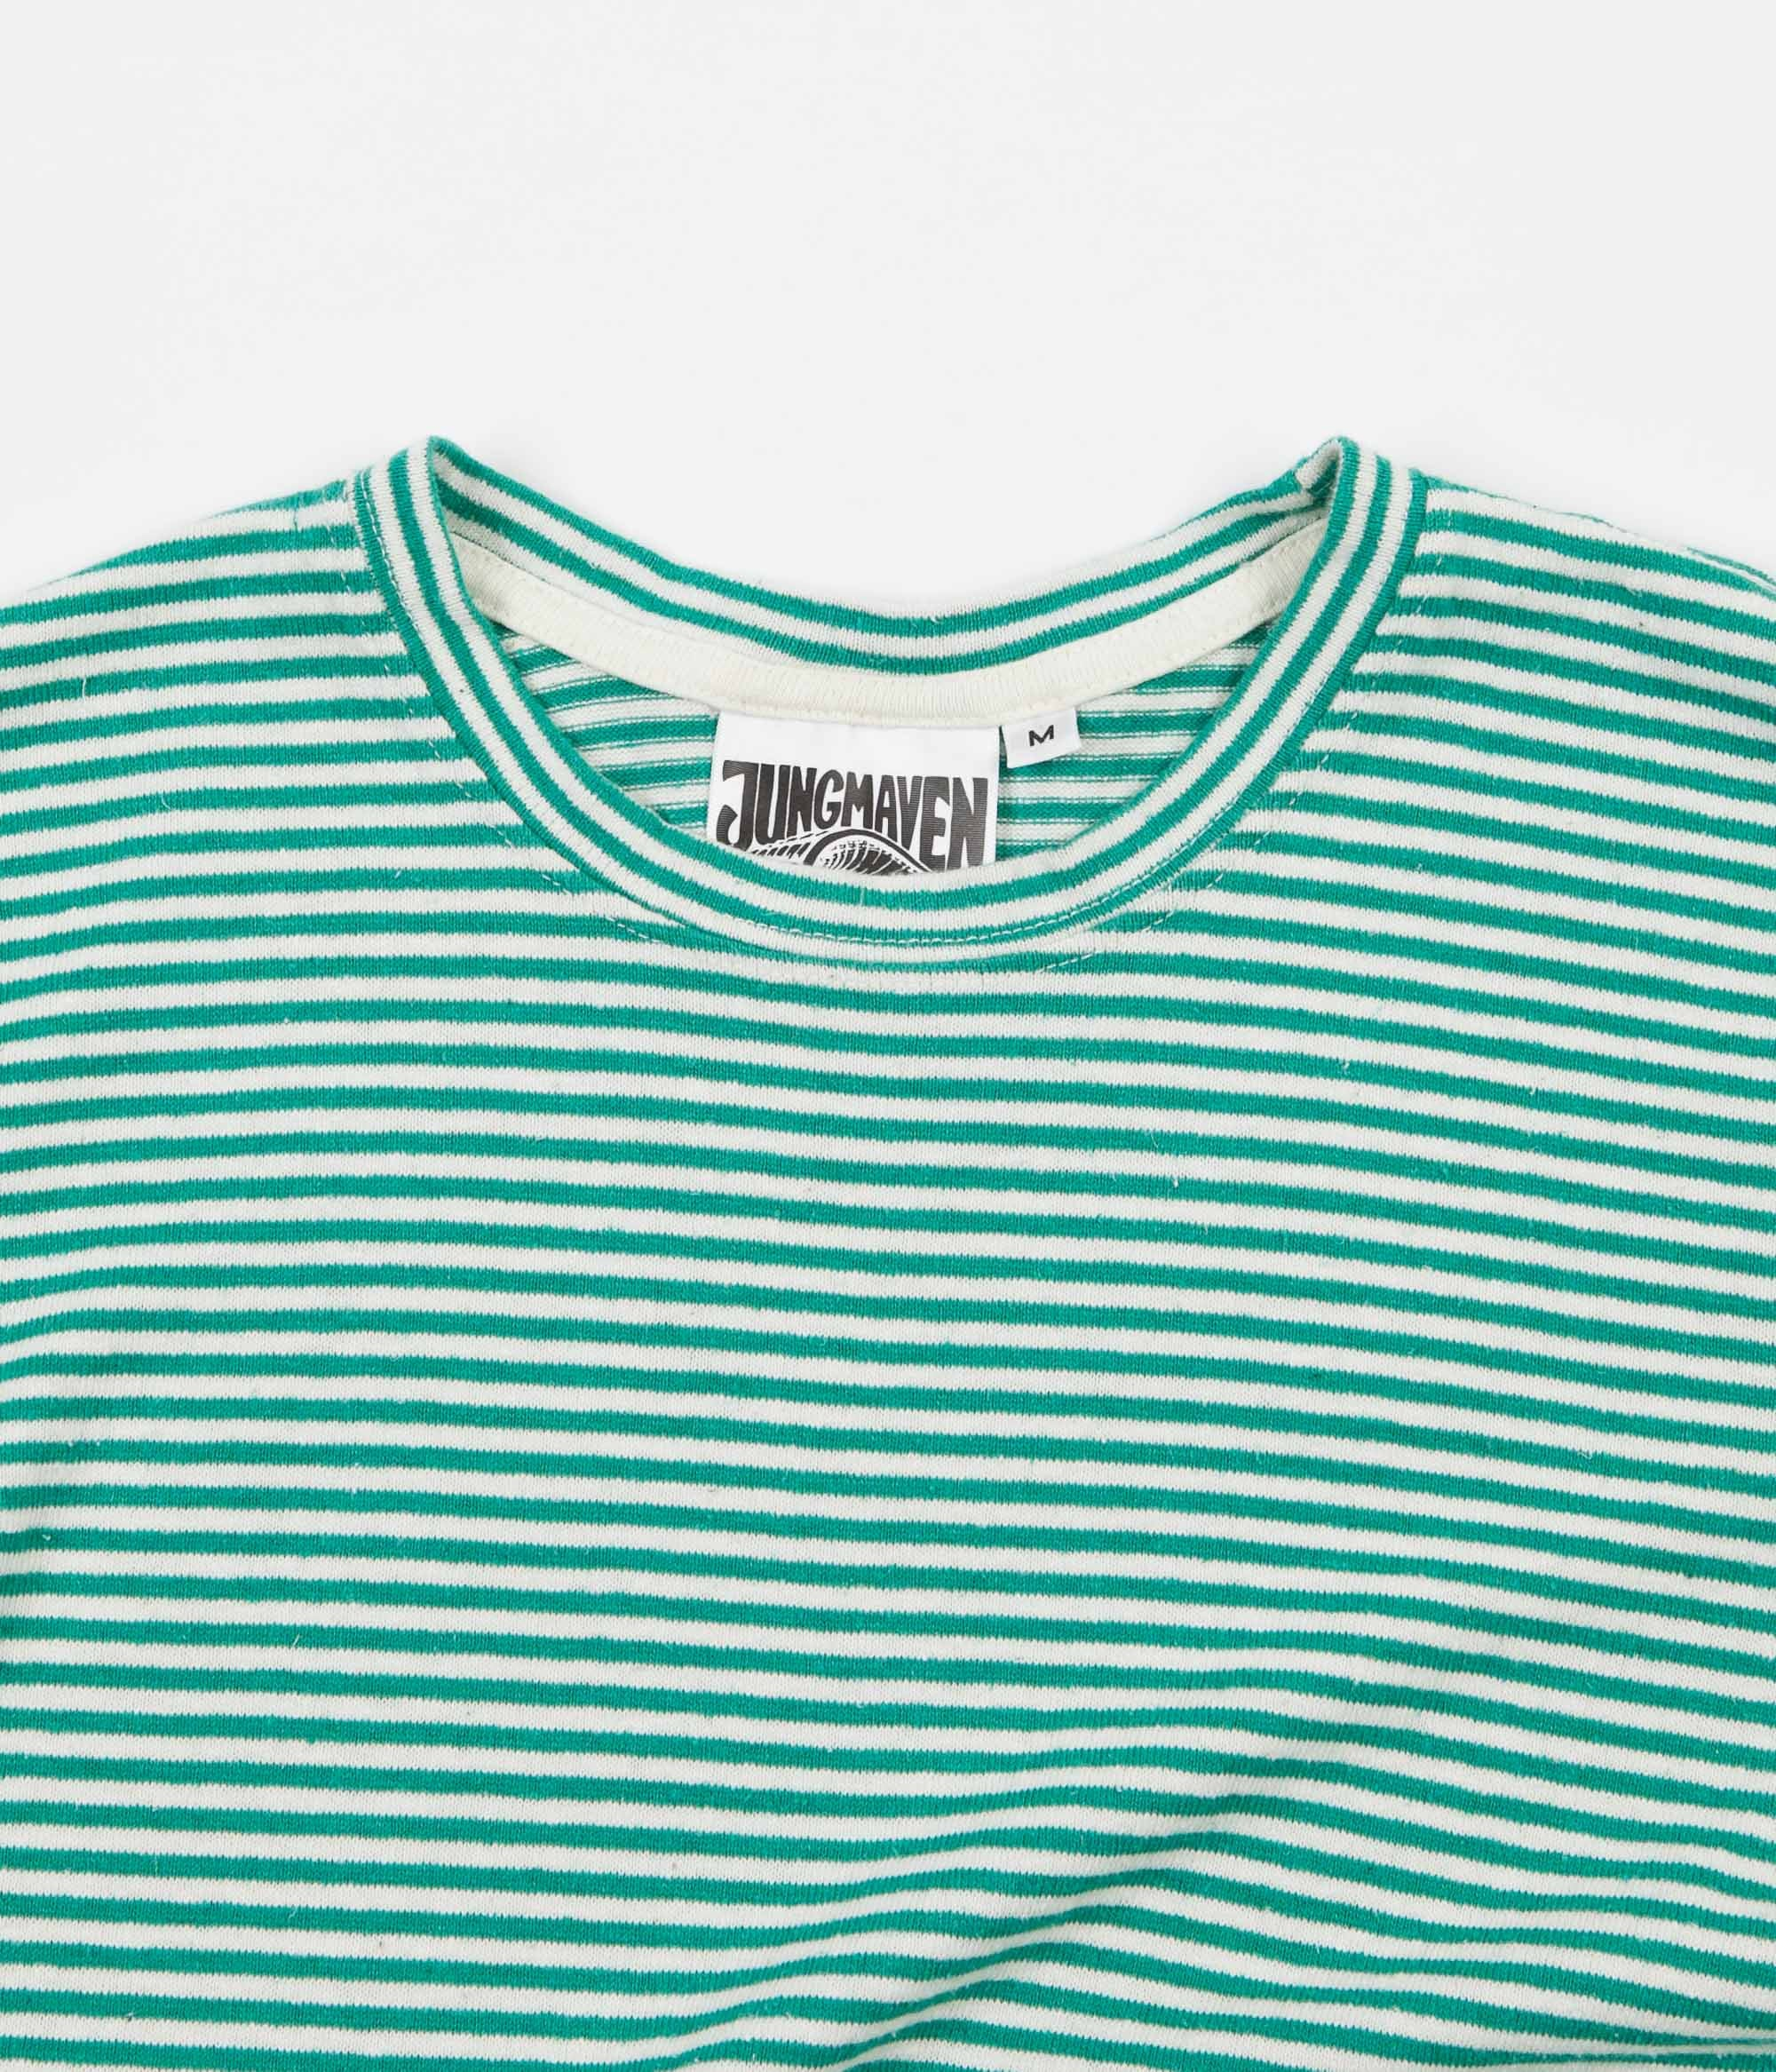 Jungmaven Yarn Dyed Hemp T-Shirt - Basil Green Stripe